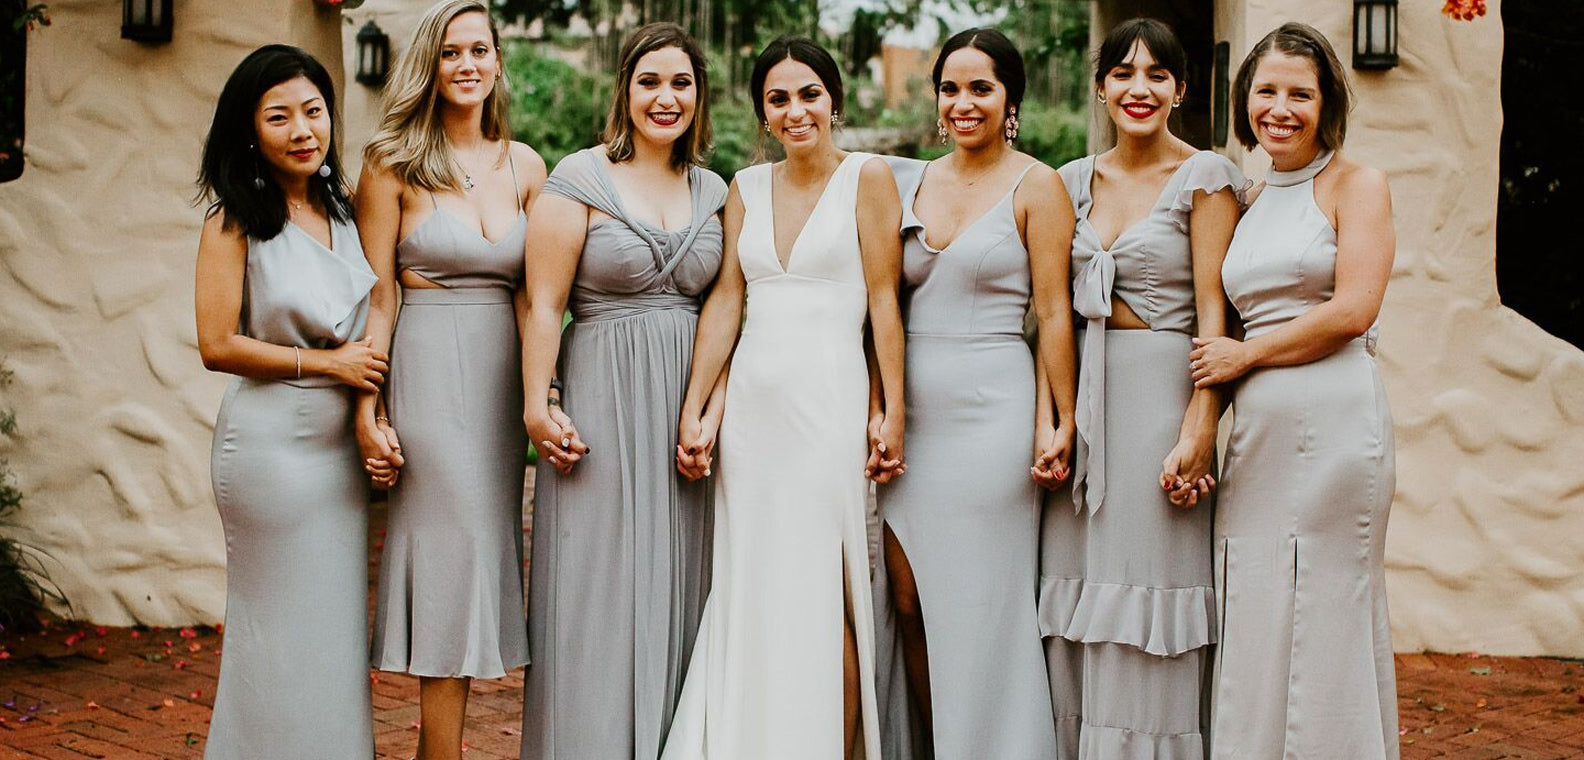 What to Wear to a Wedding: The Ins and Outs of Wedding Dress Code